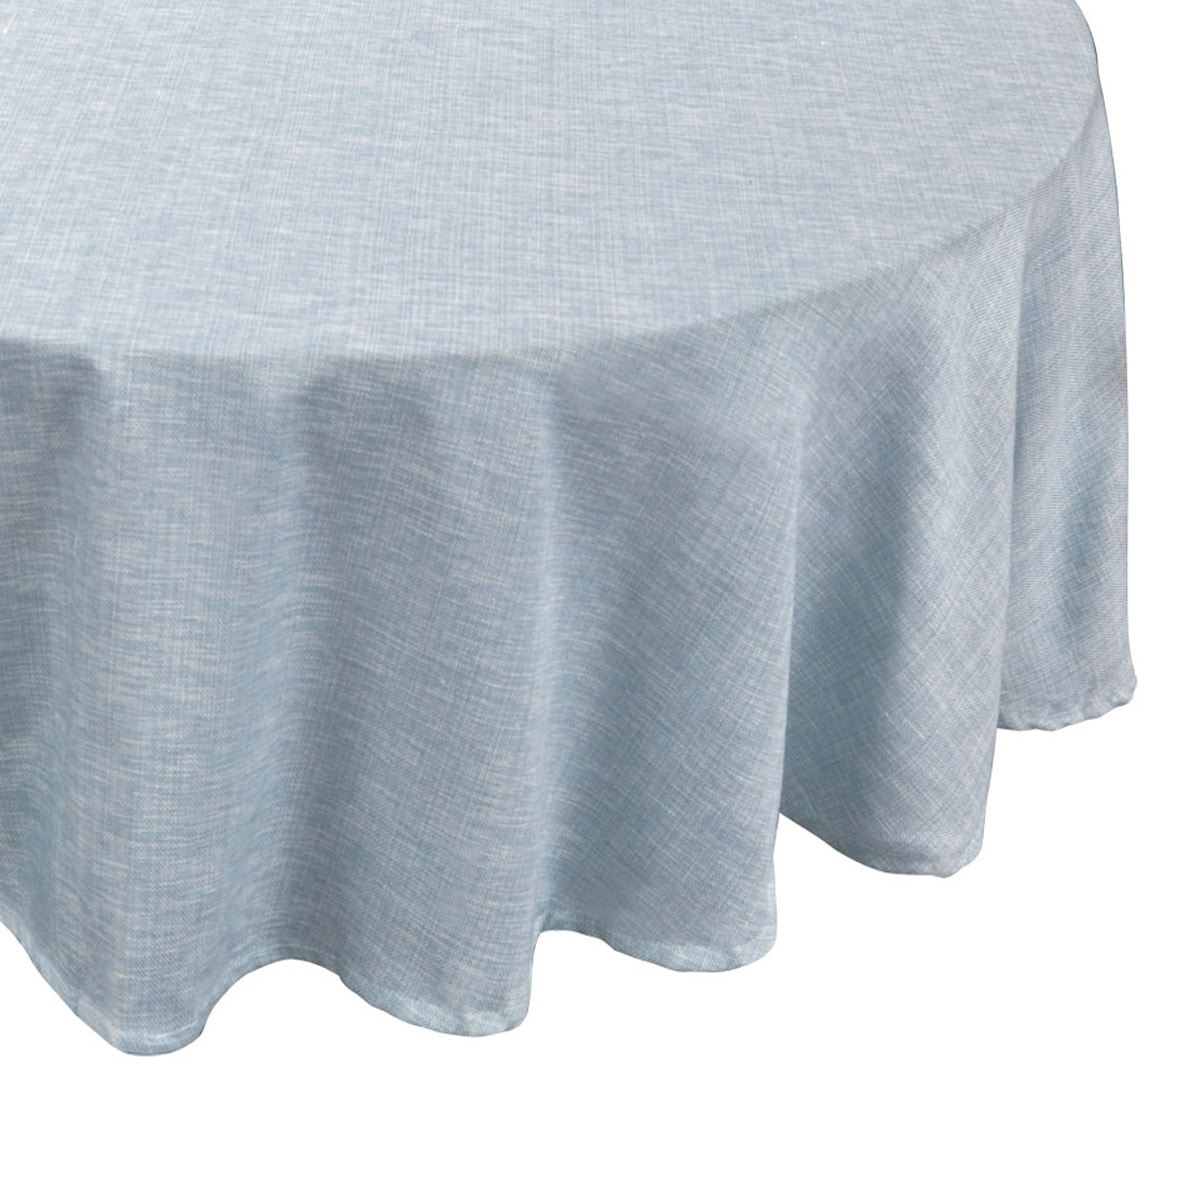 Christmas Tablecloths Australia Restaurant Quality Chambray Vinyl Table Cloth With Soft Flannel Backing